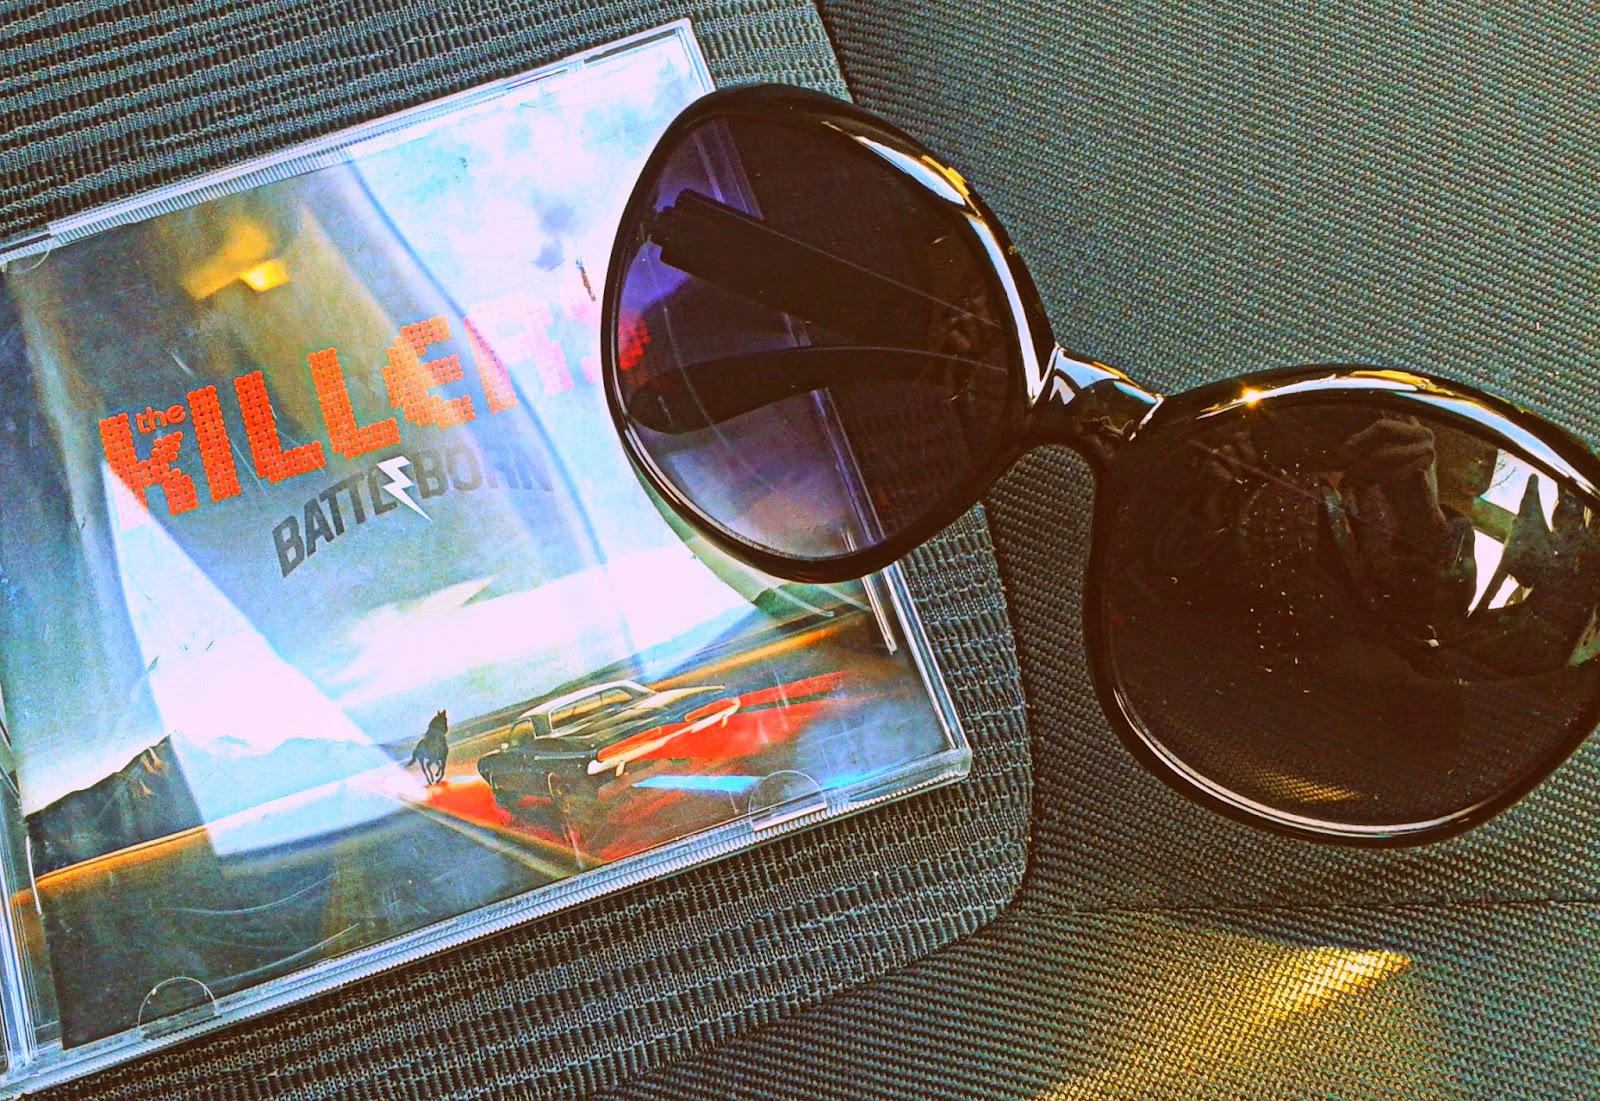 Project 365 day 84 - Sunglasses and Battleborn, The Killers  // 76sunflowers